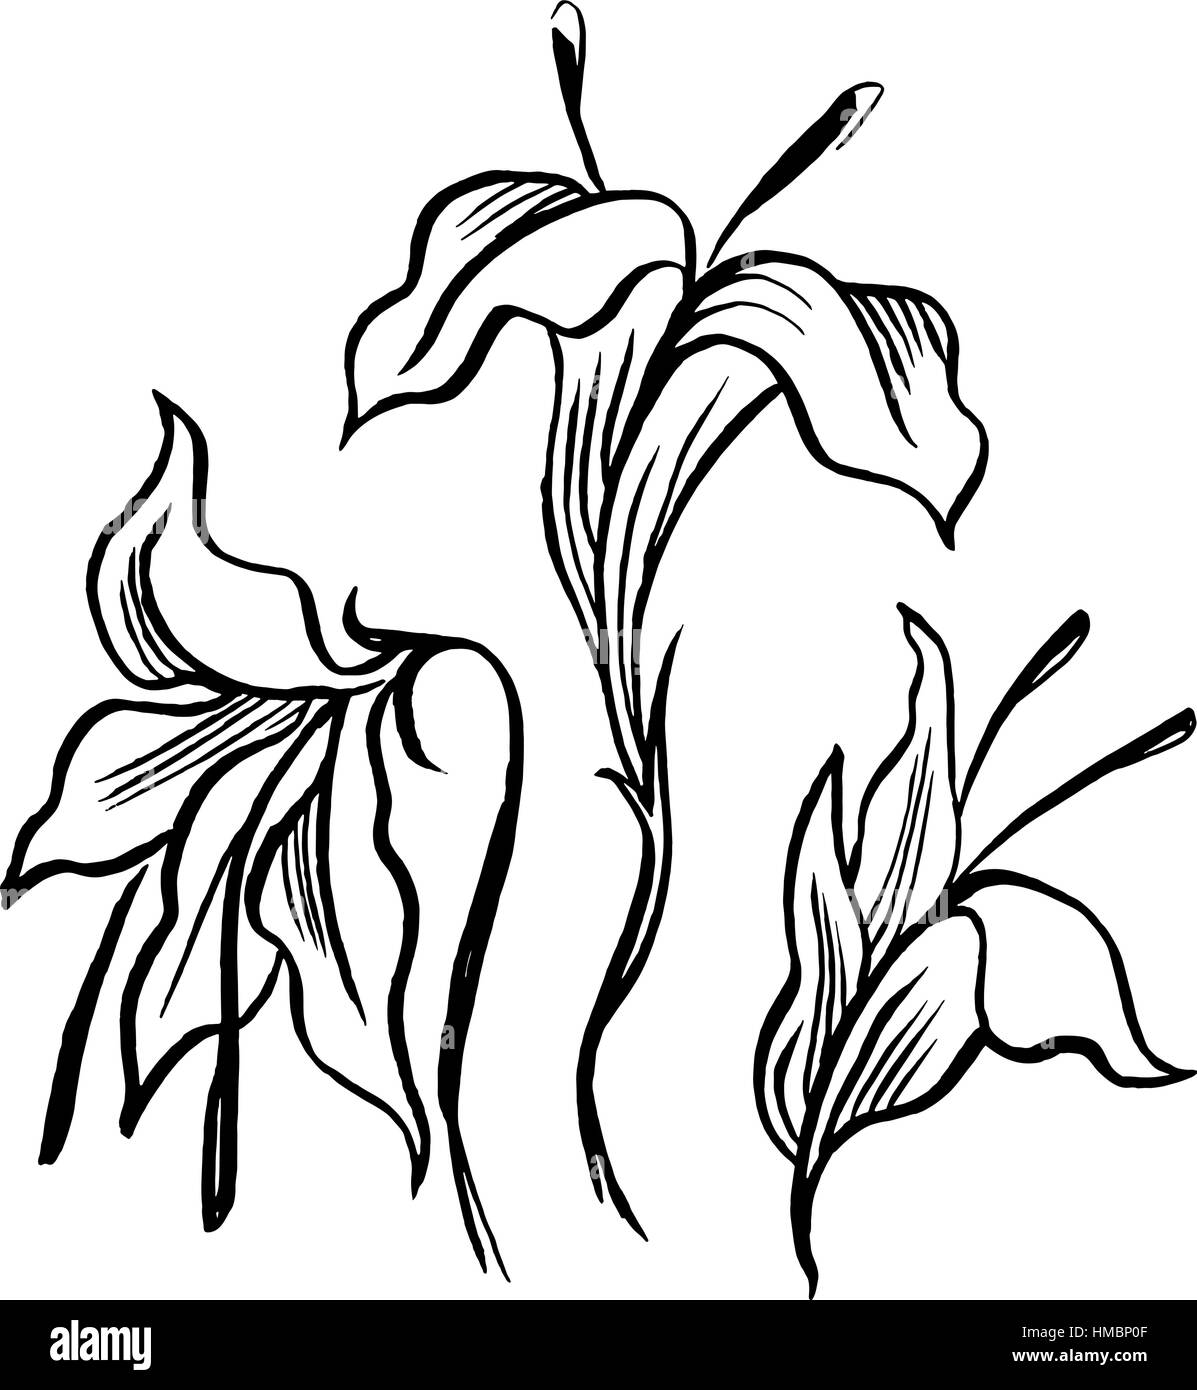 Lily tattoo stock photos lily tattoo stock images alamy vector sketch black contour of lily flowers stock image izmirmasajfo